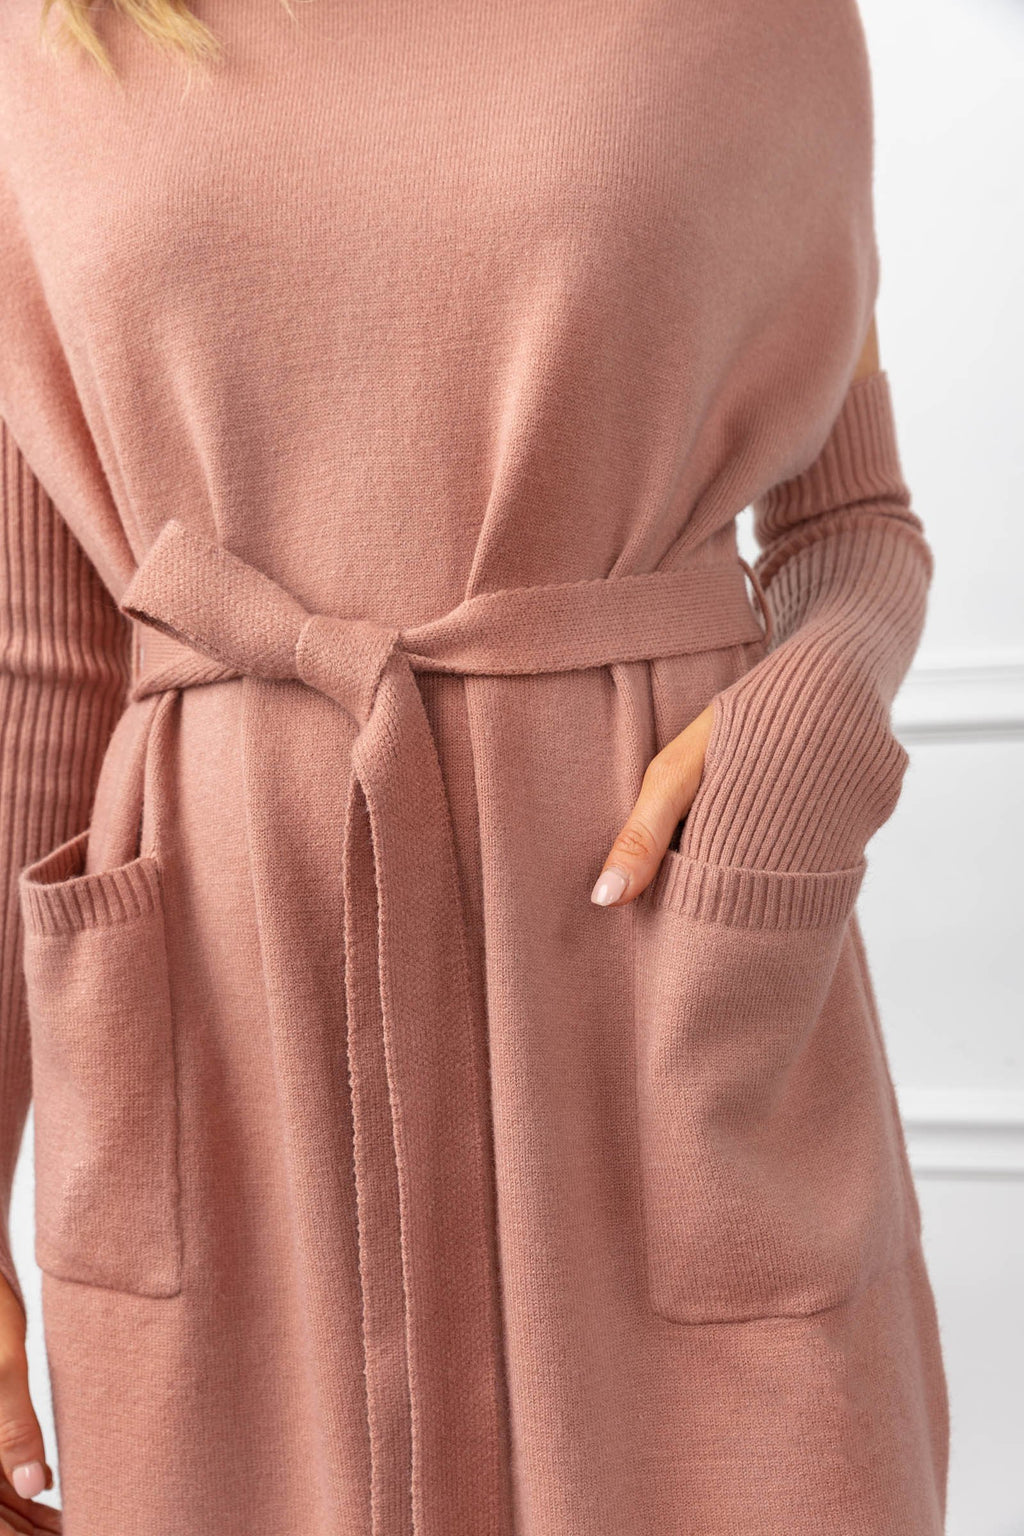 Harlow Knit Dress Pink in Knitwear by J.ING - an L.A based women's fashion line